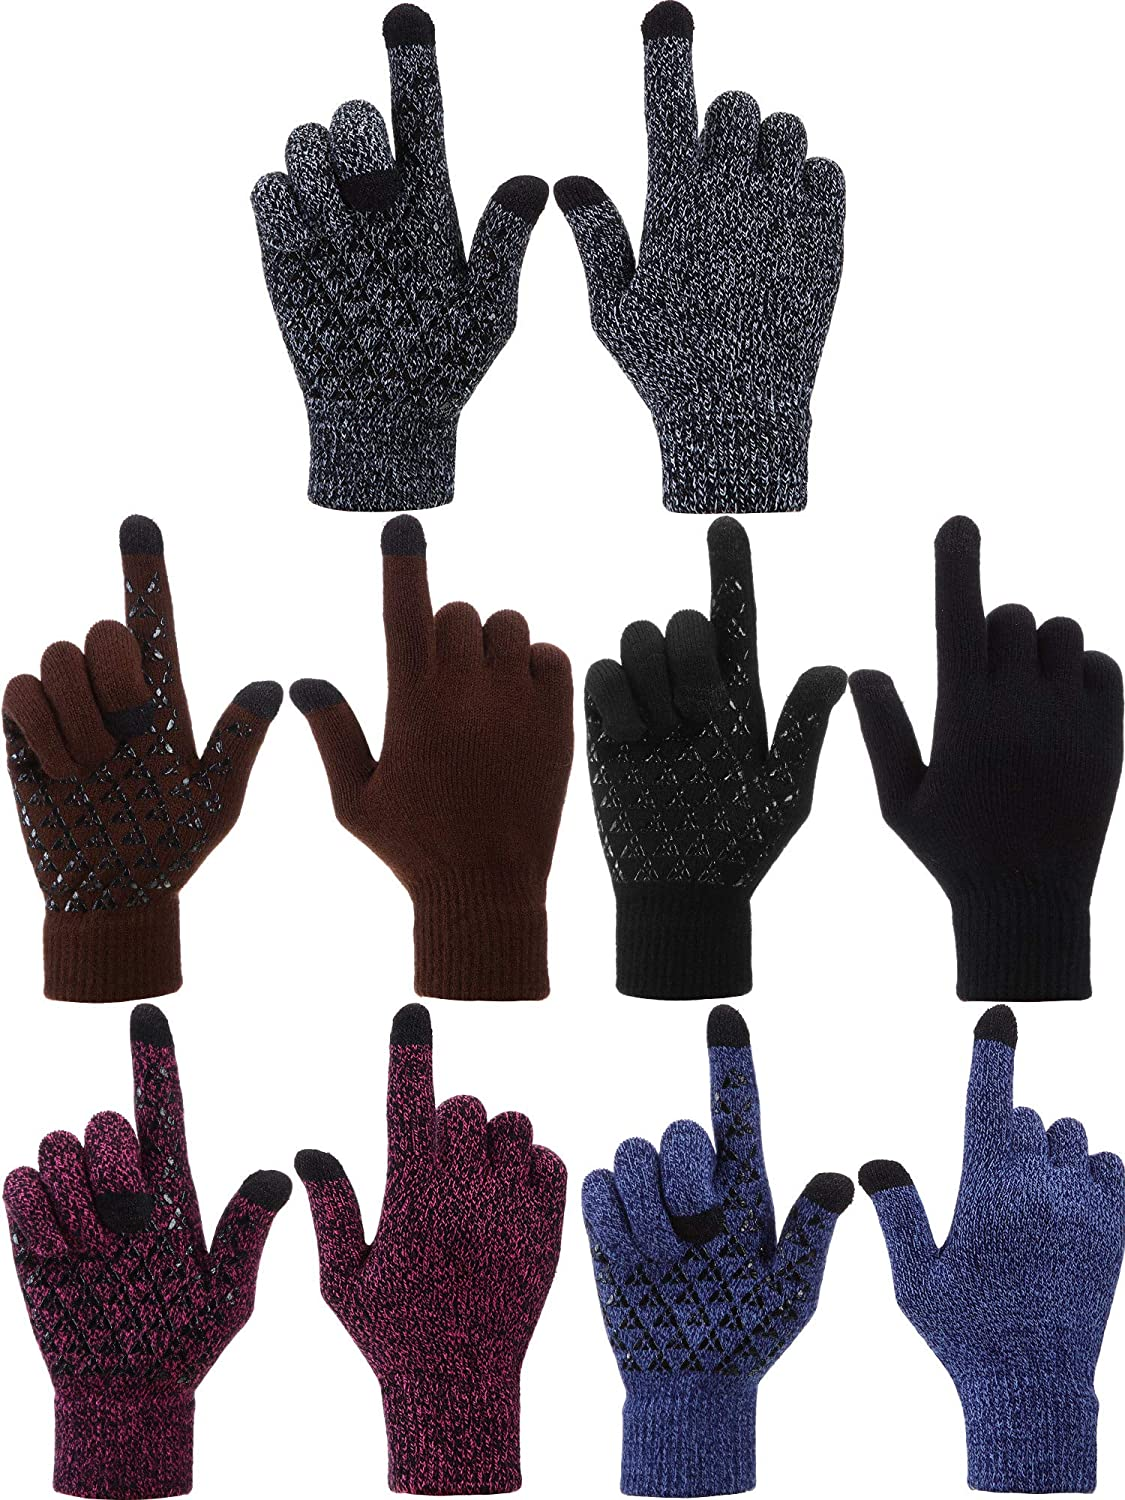 5 Pairs Winter Warm Knitted Gloves Touchscreen Texting Anti-Slip Palm Gloves for Women Men